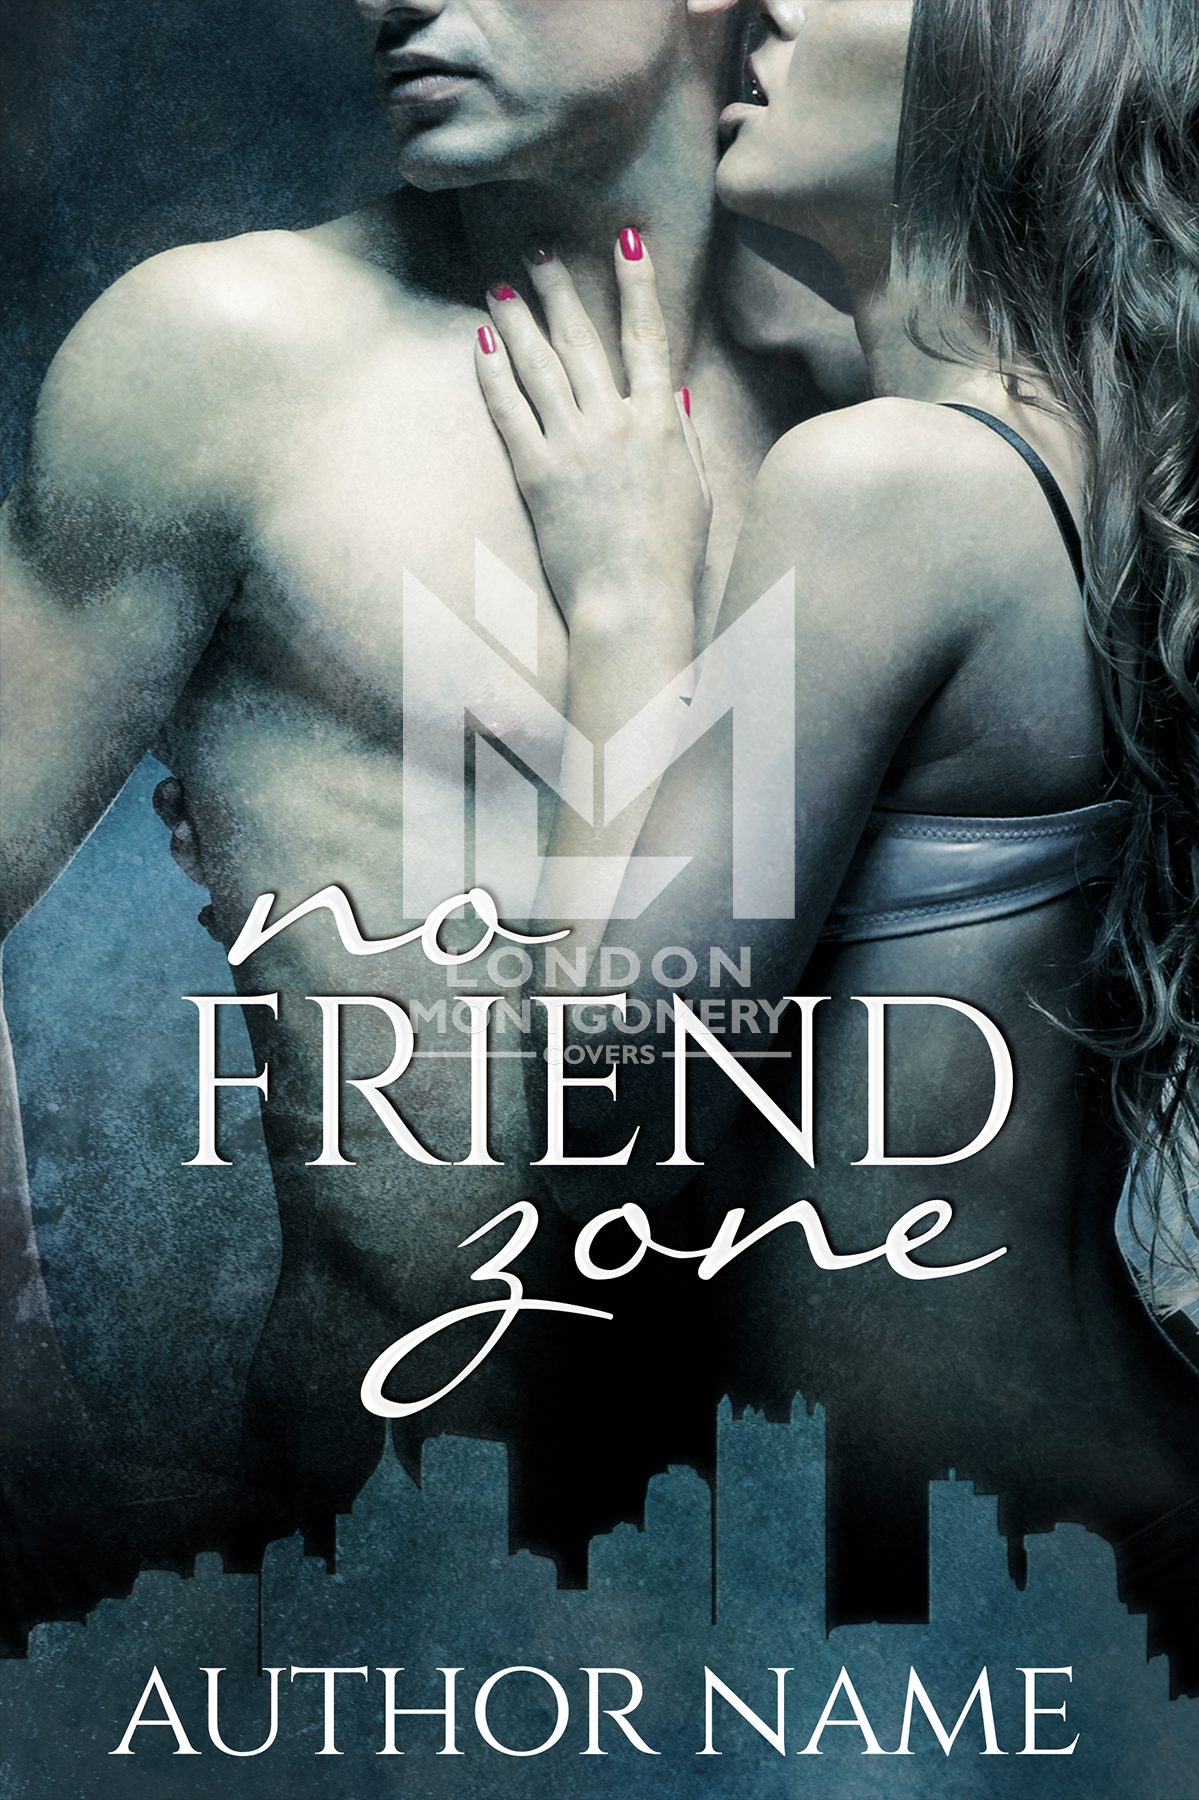 Book Cover Series Zone : No friend zone the book cover designer